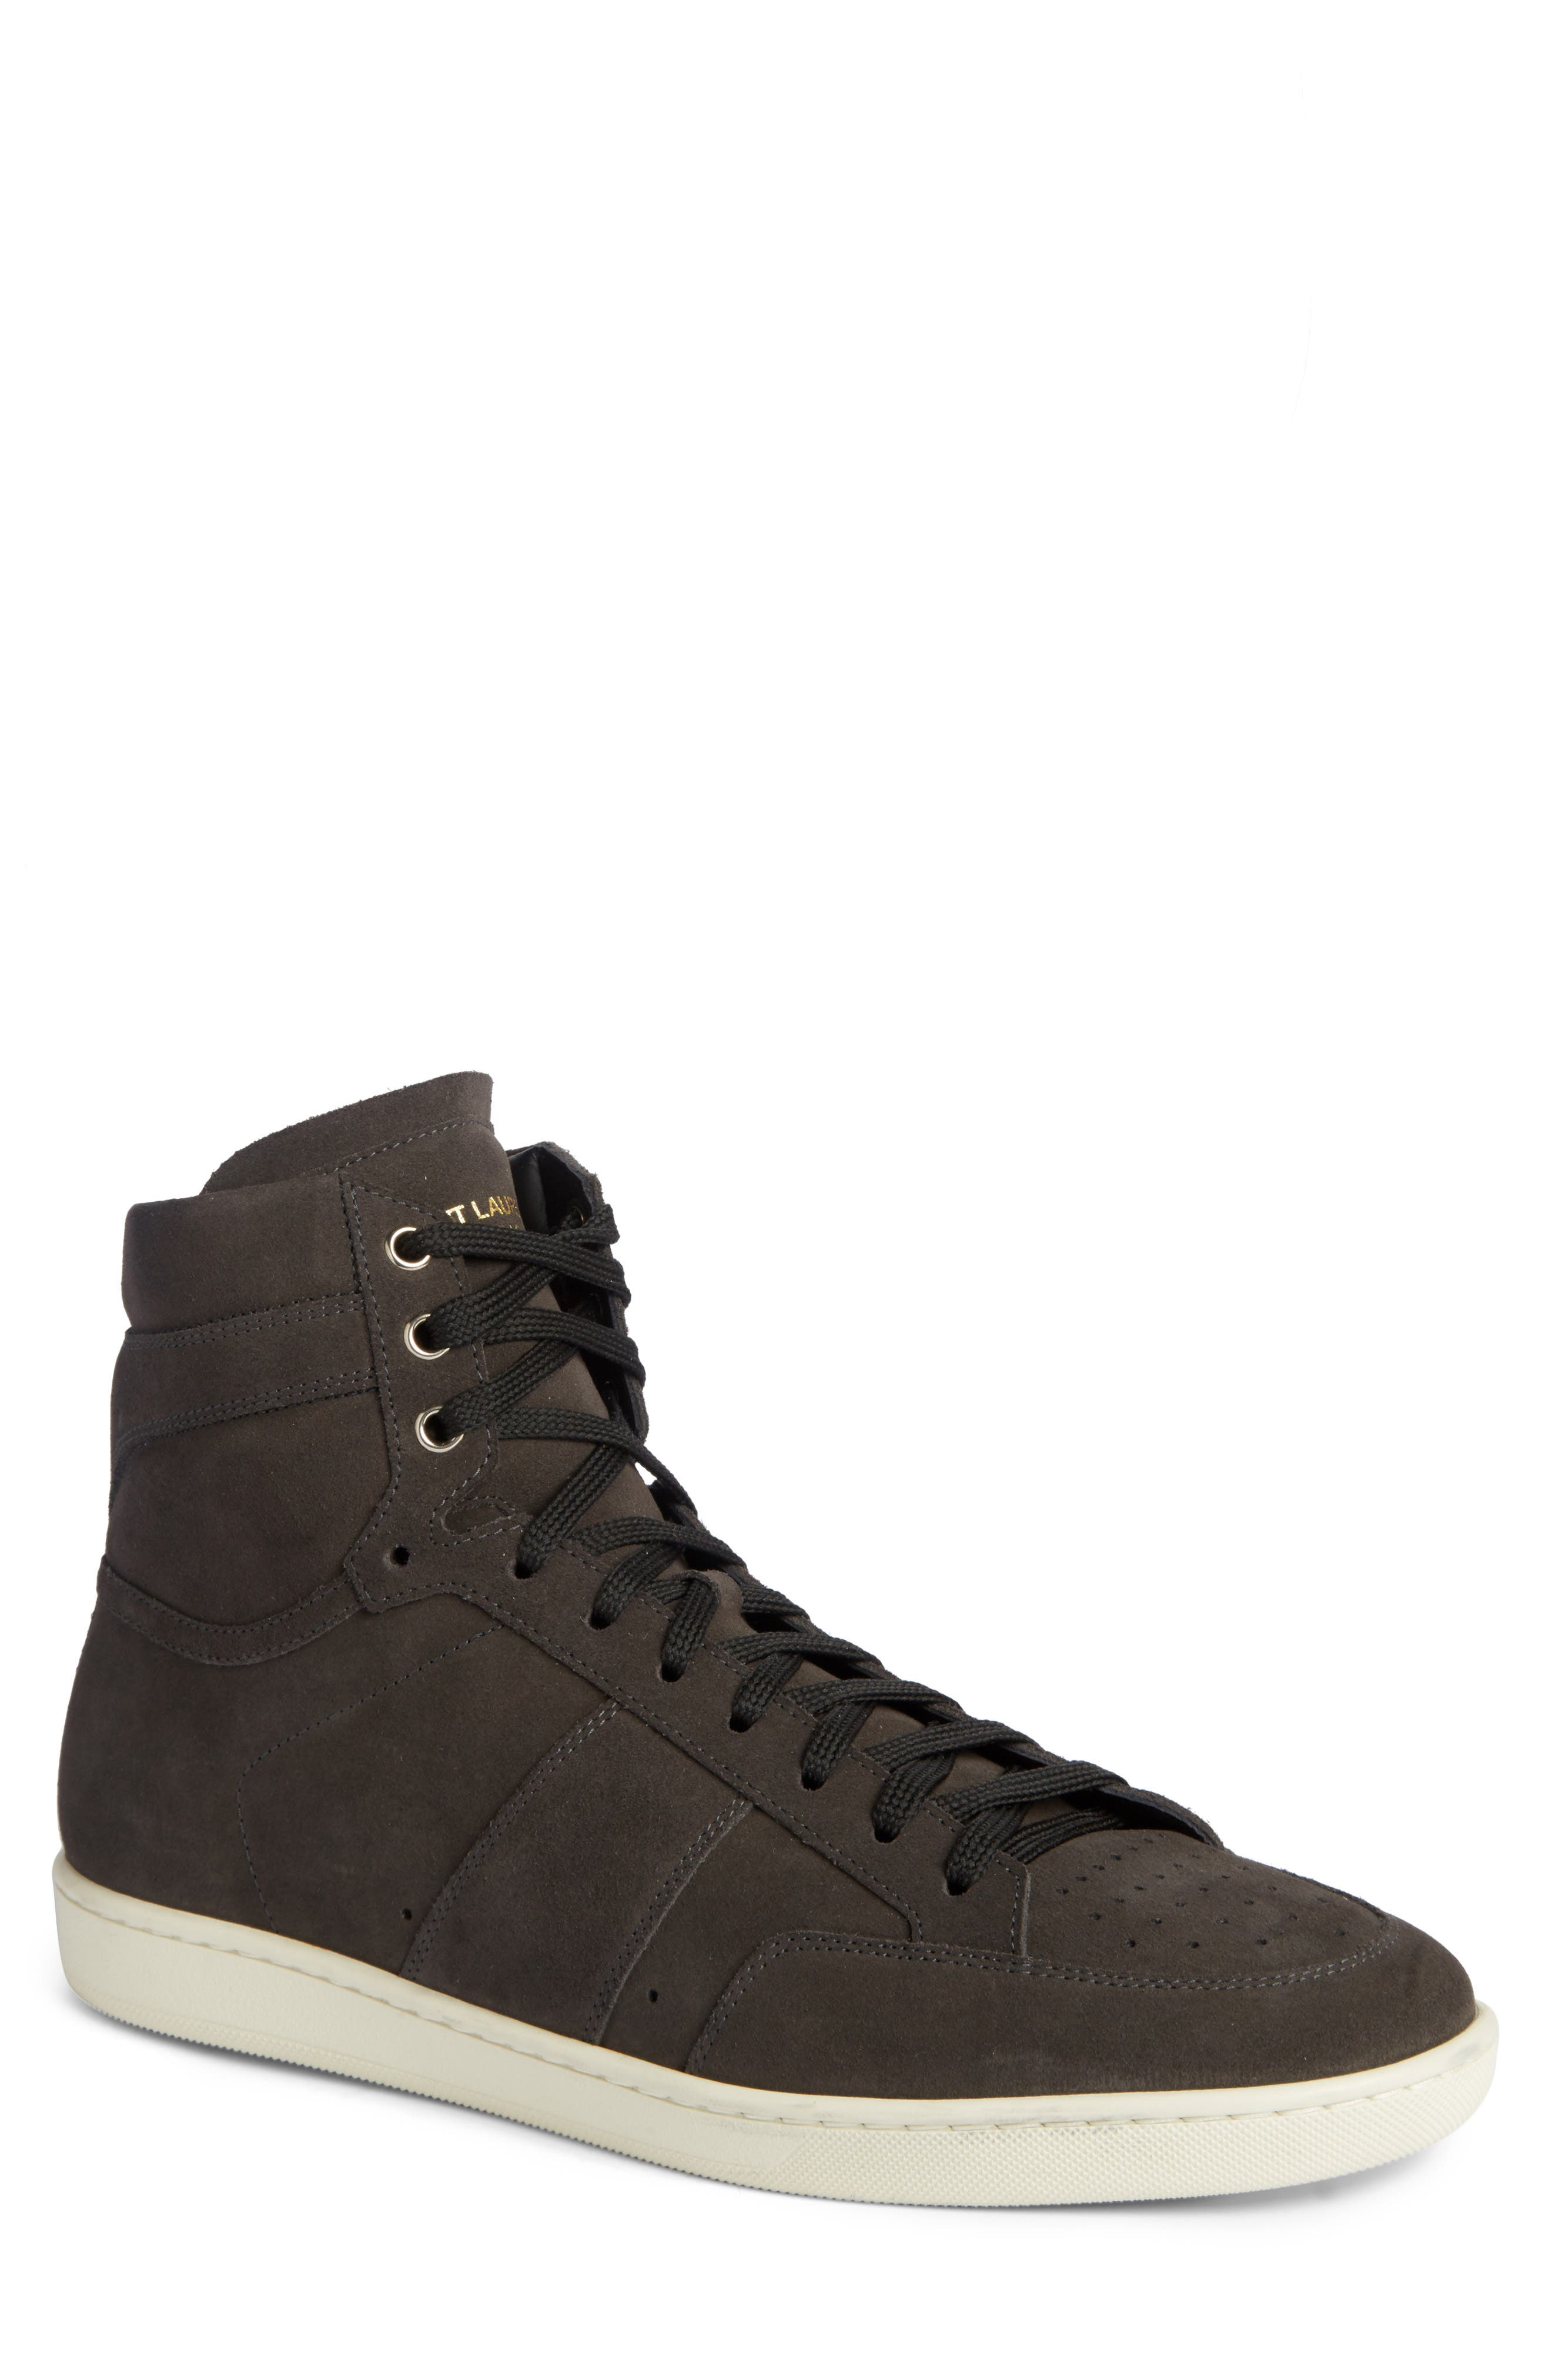 High Top Sneaker,                         Main,                         color, Grey Suede